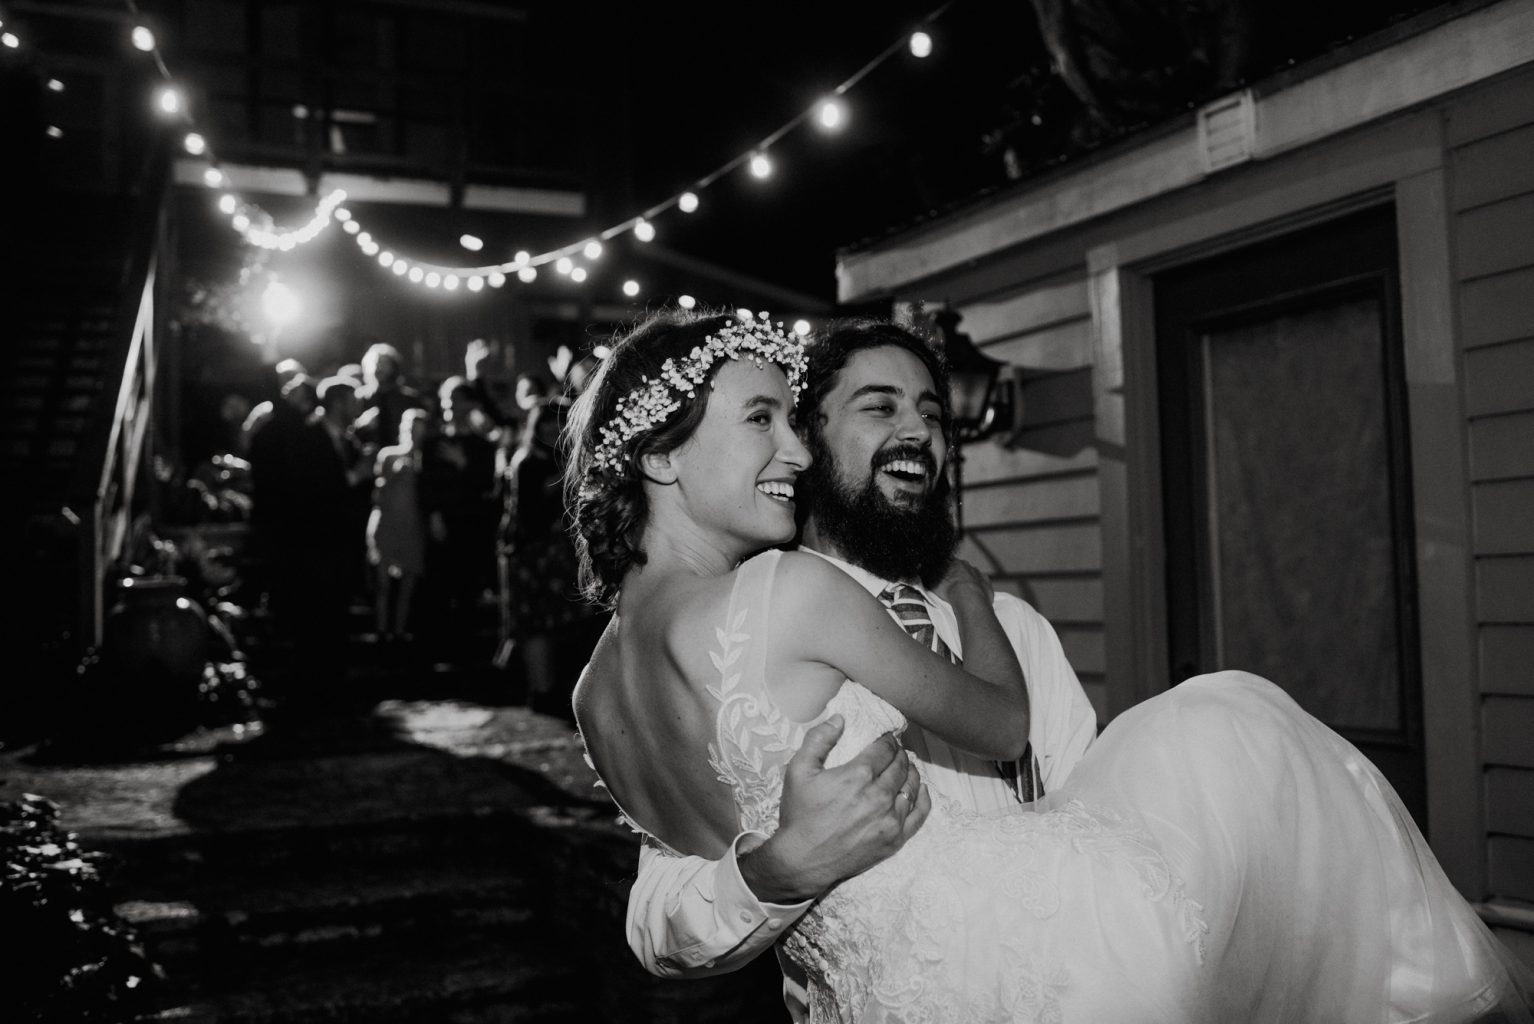 storytelling wedding photography for everyone in Austin Texas